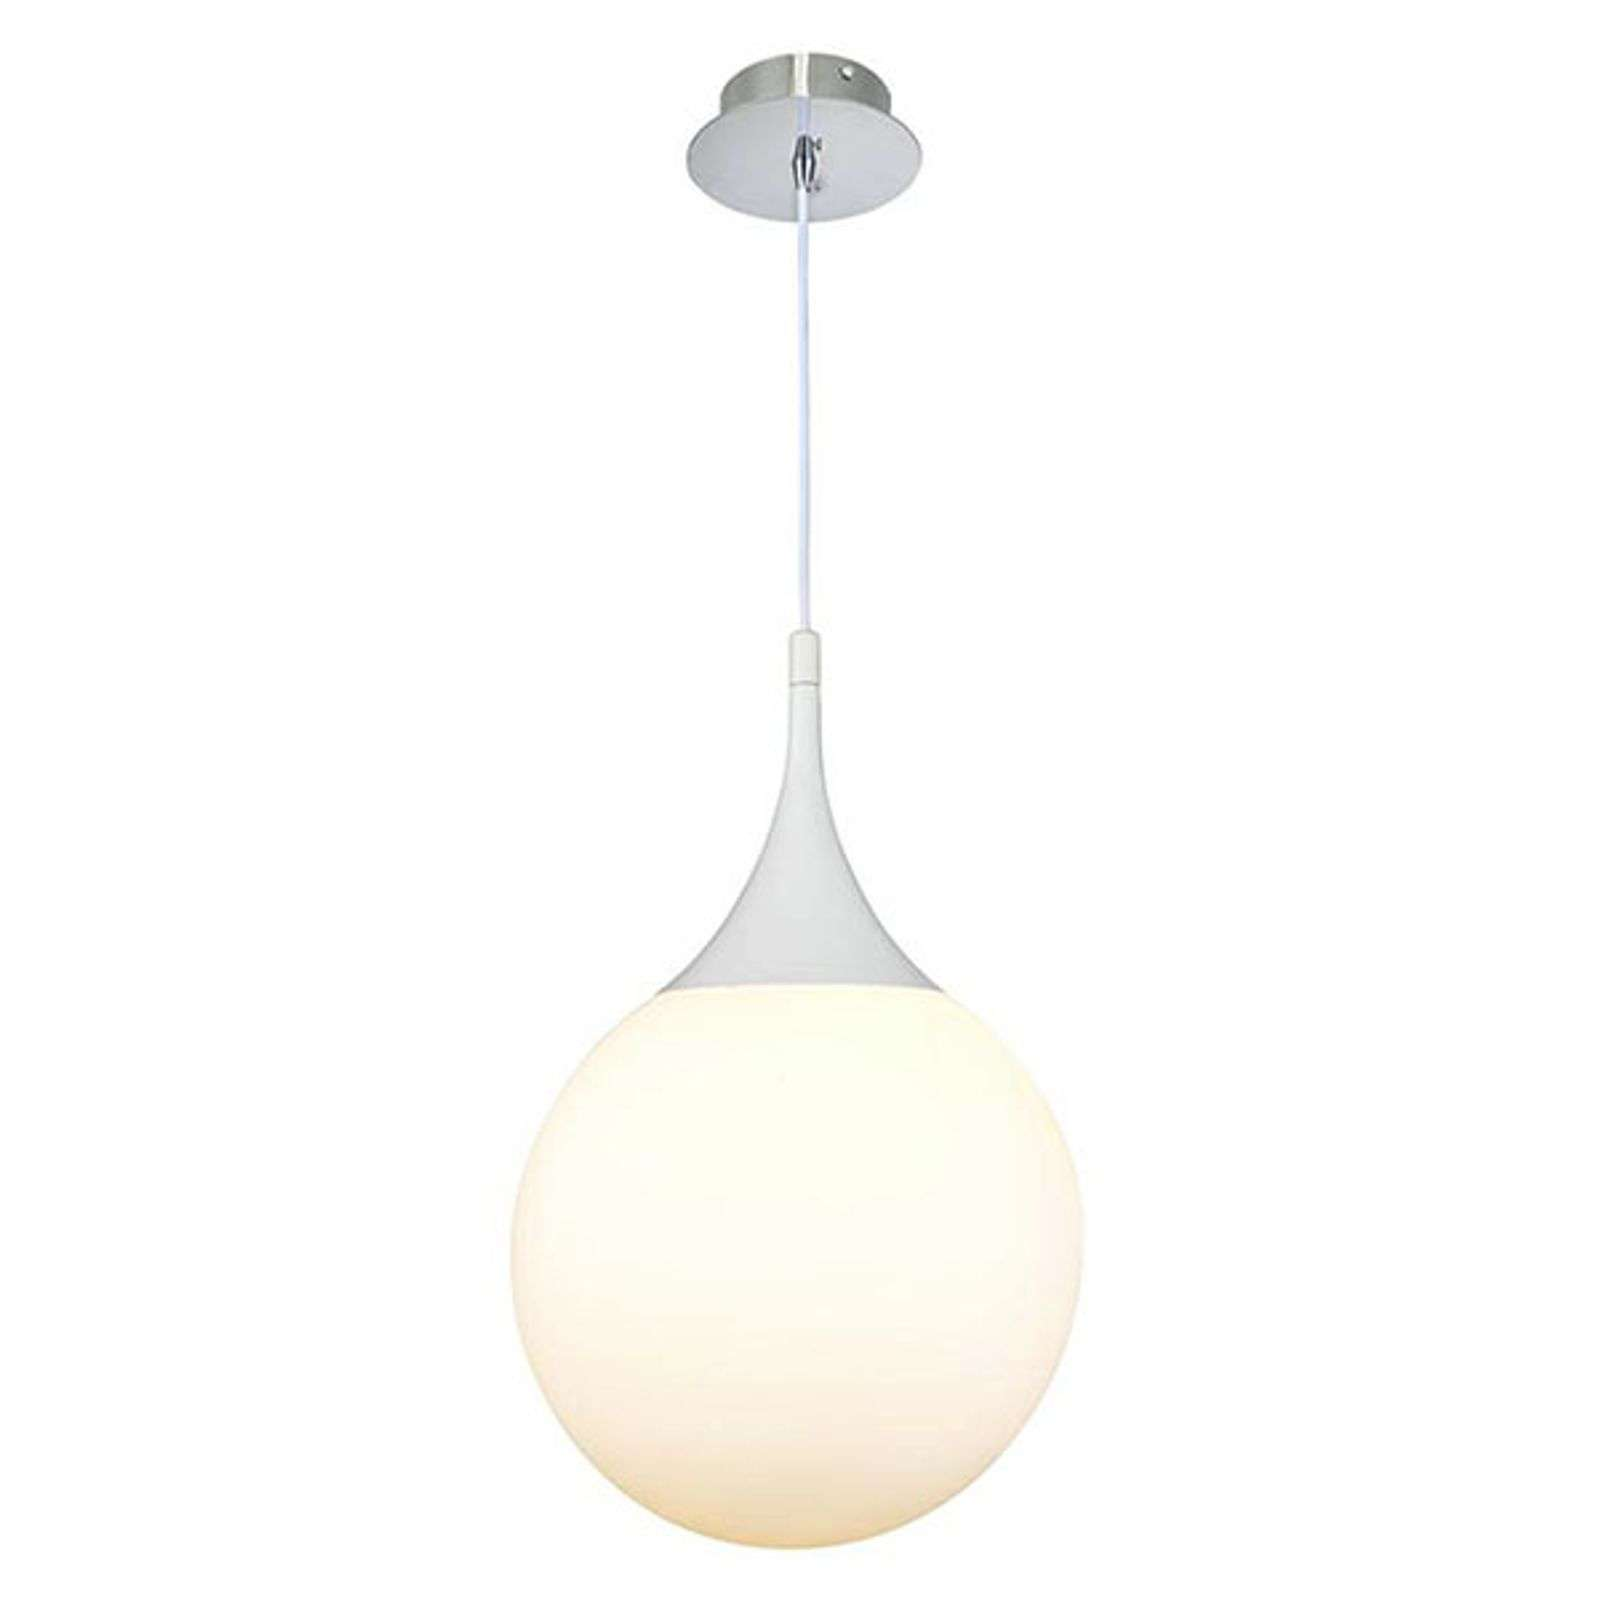 Suspension blanche Dewdrop, 30 cm